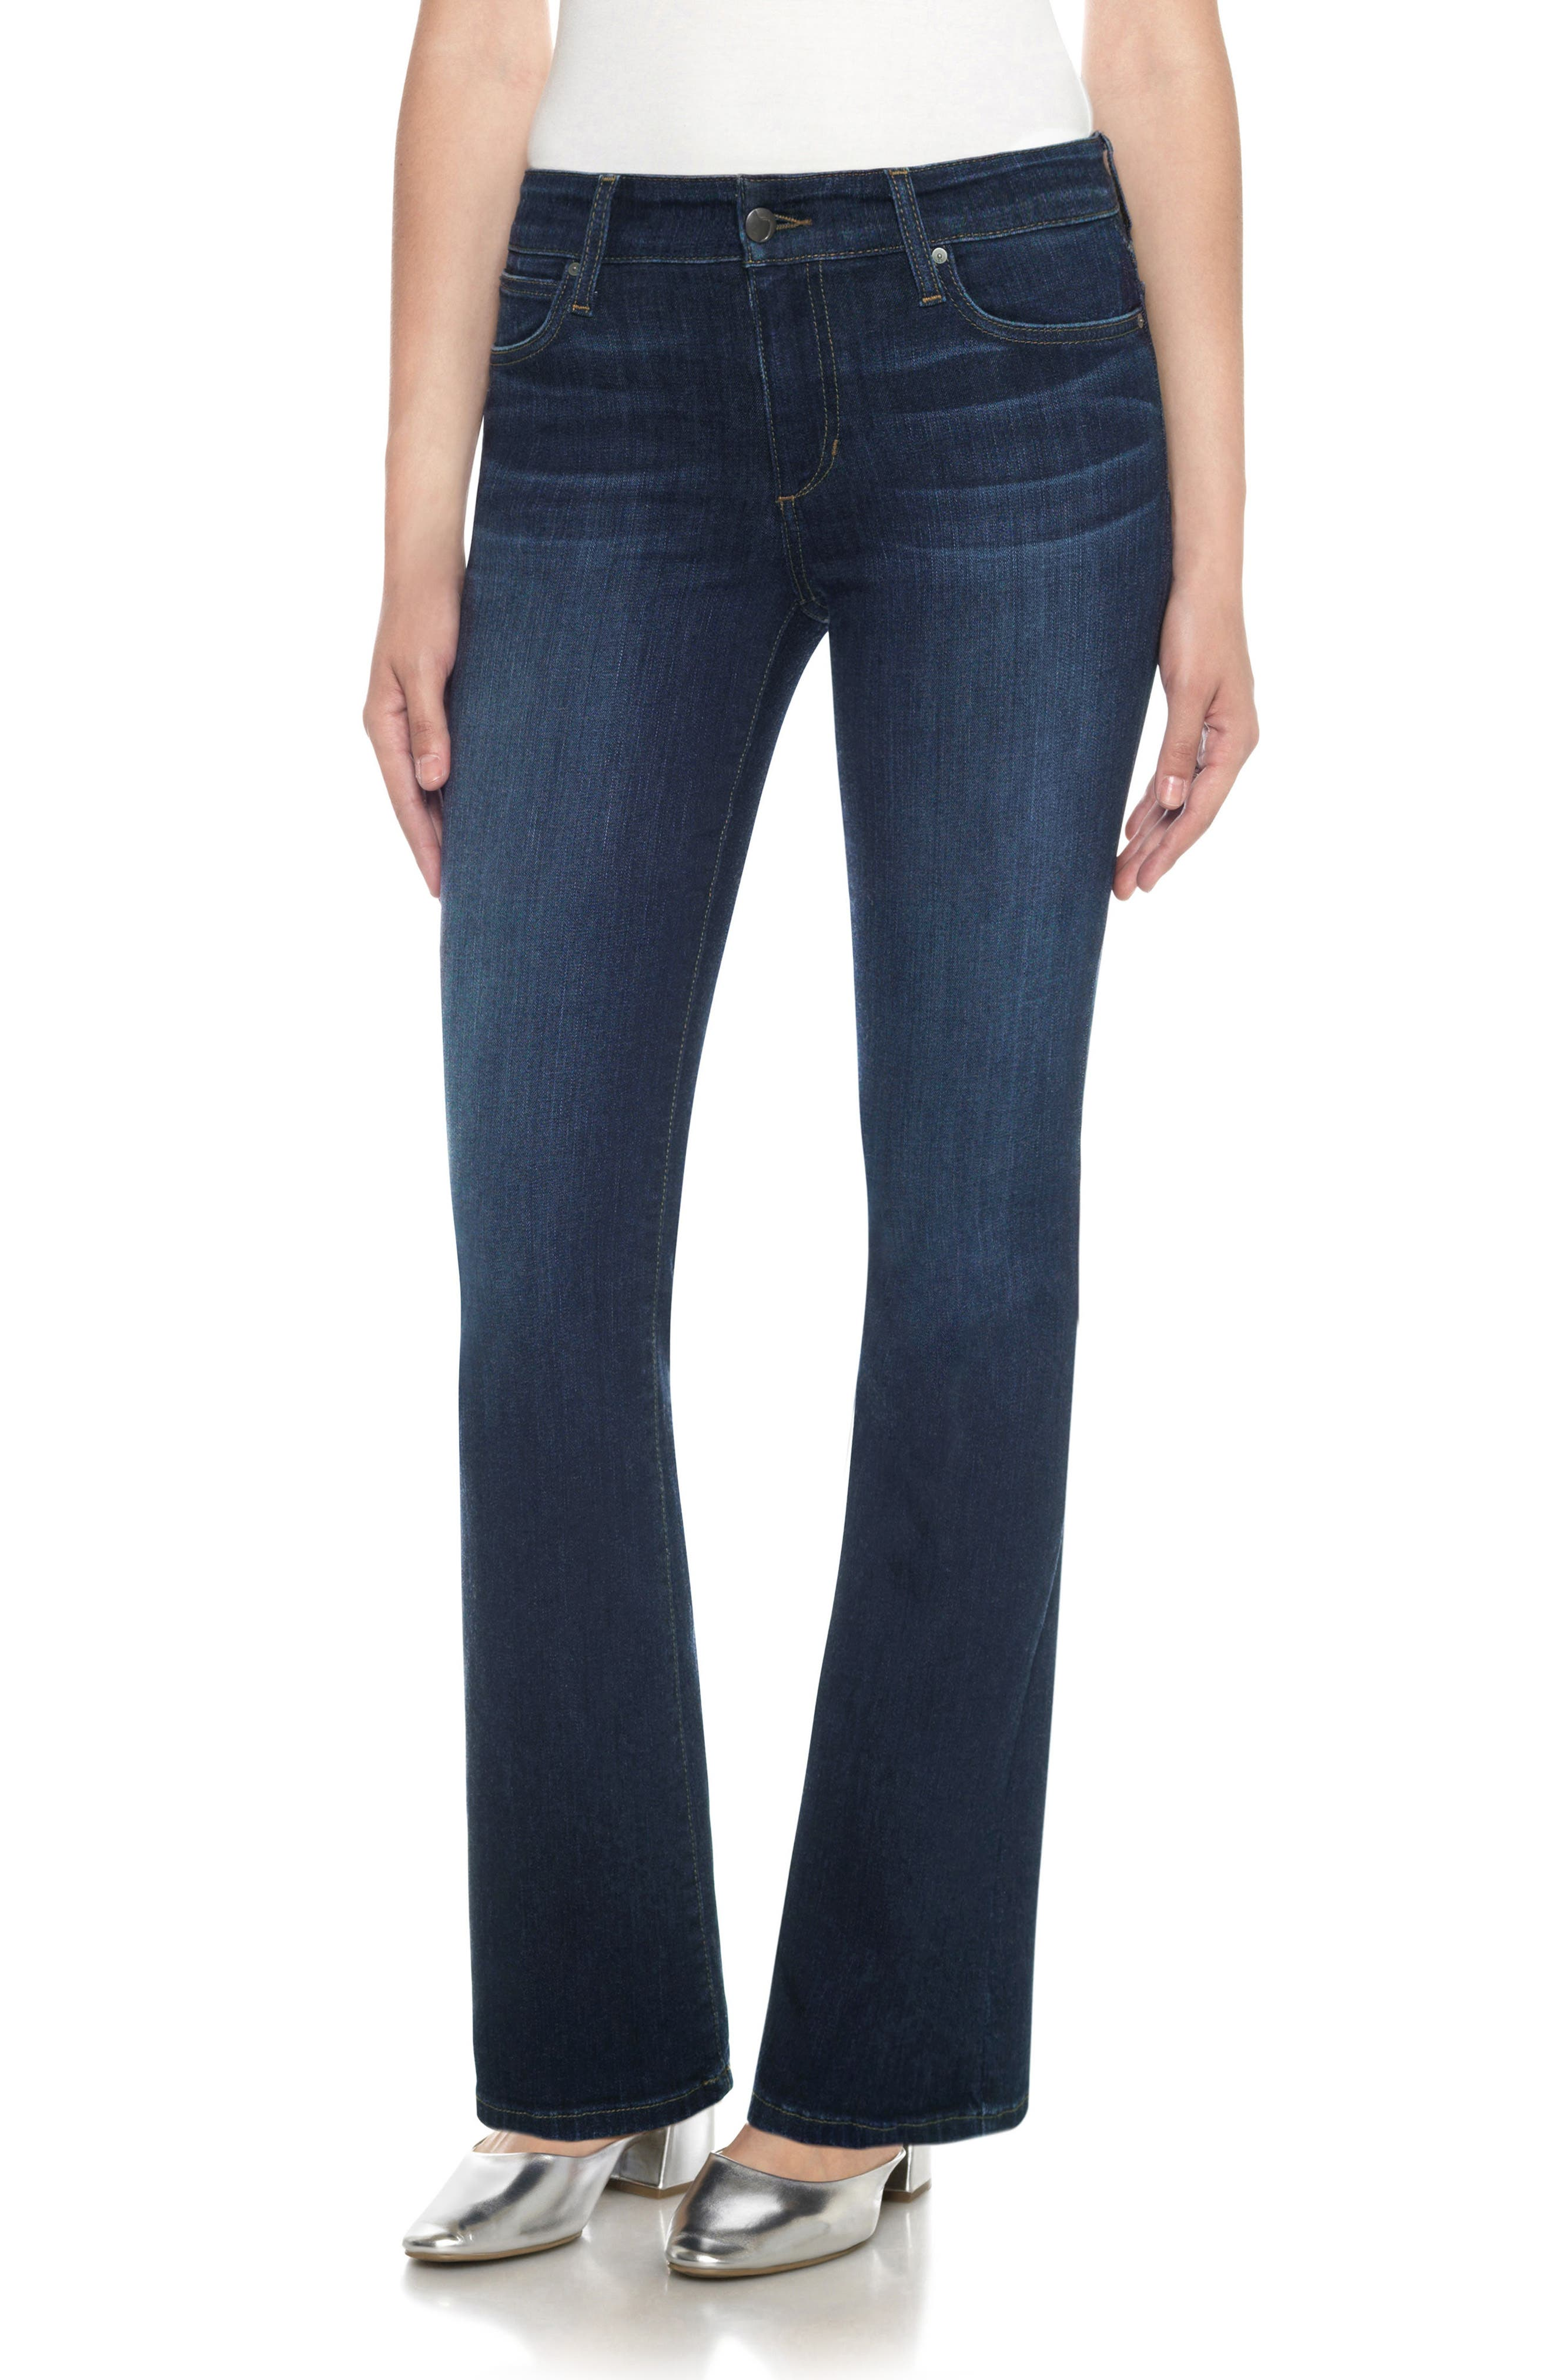 JOES Flawless - Provocateur Bootcut Jeans